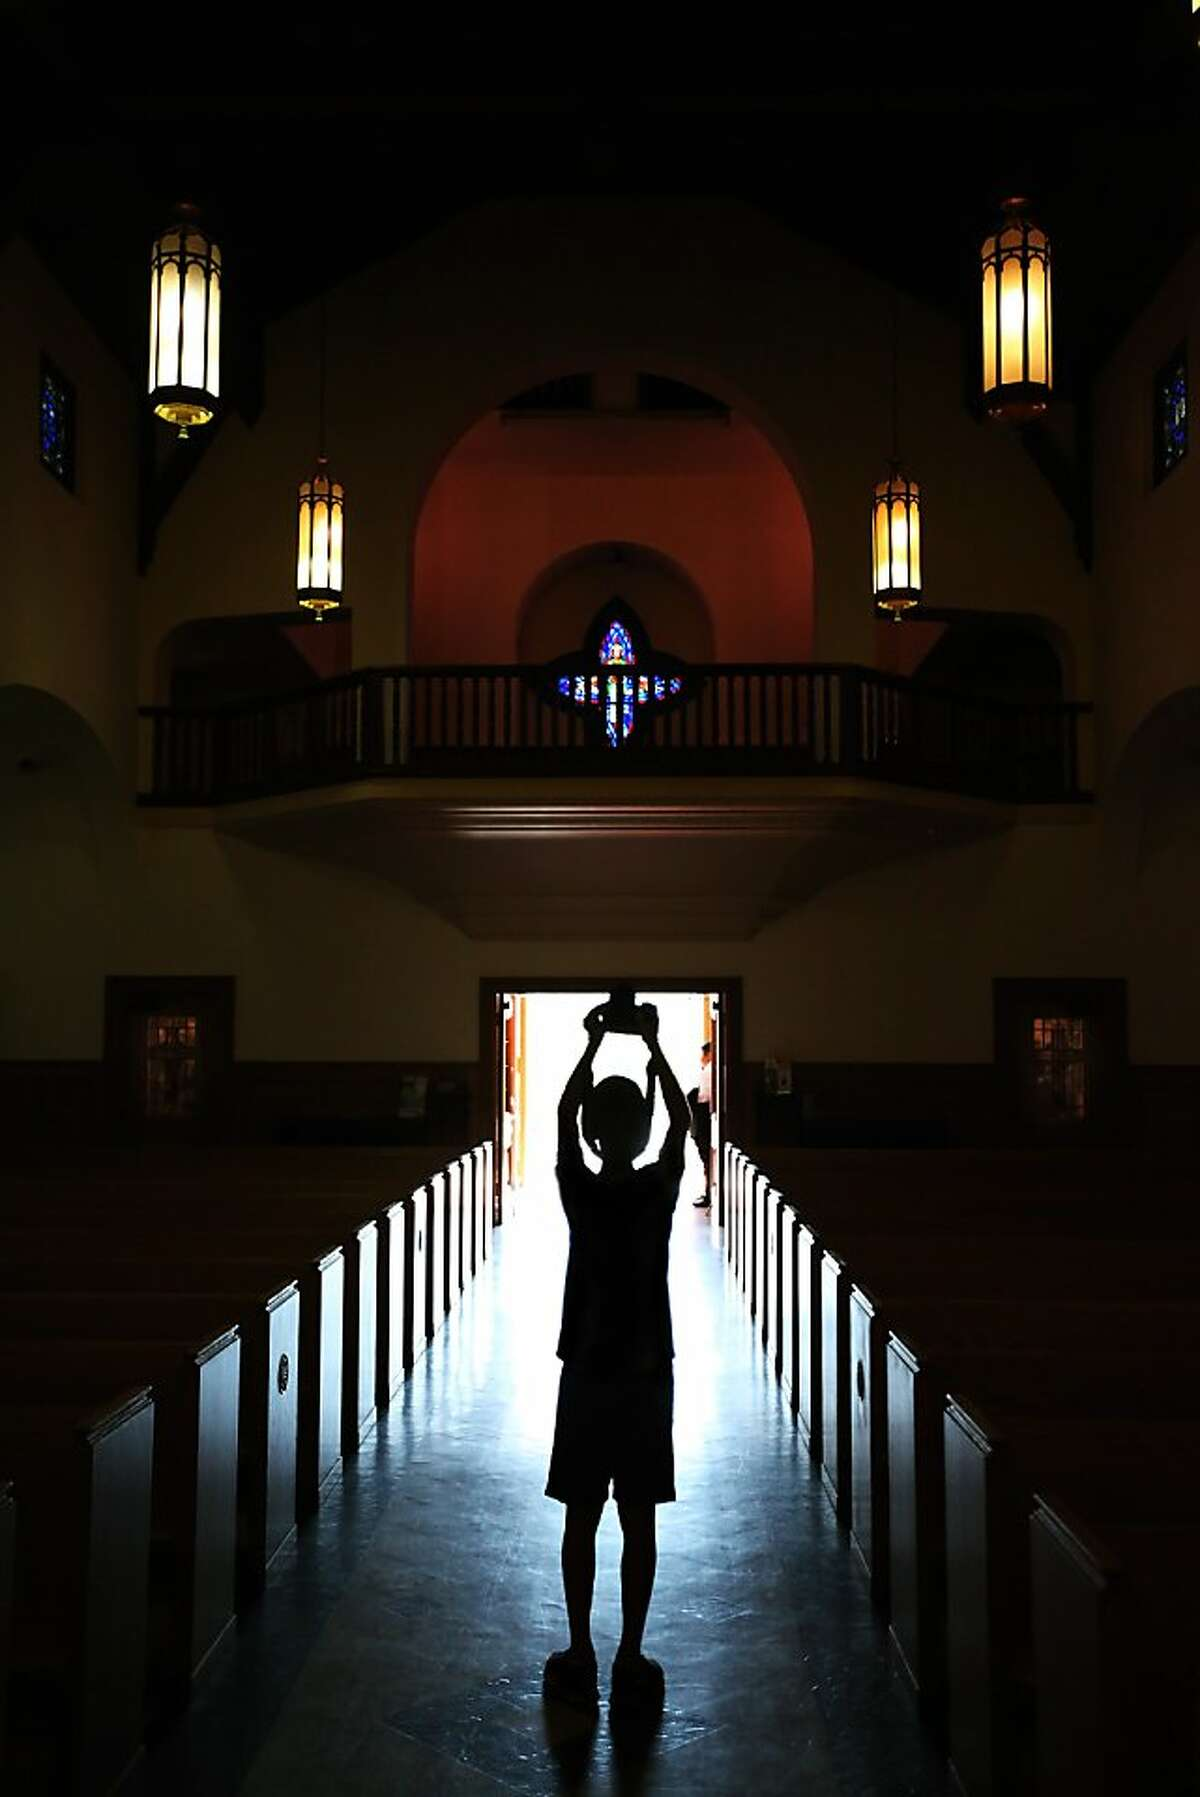 The interior of the main cathedral at the Mission San Rafael Arcangel in San Rafael, CALIF on Sept. 24, 2011.